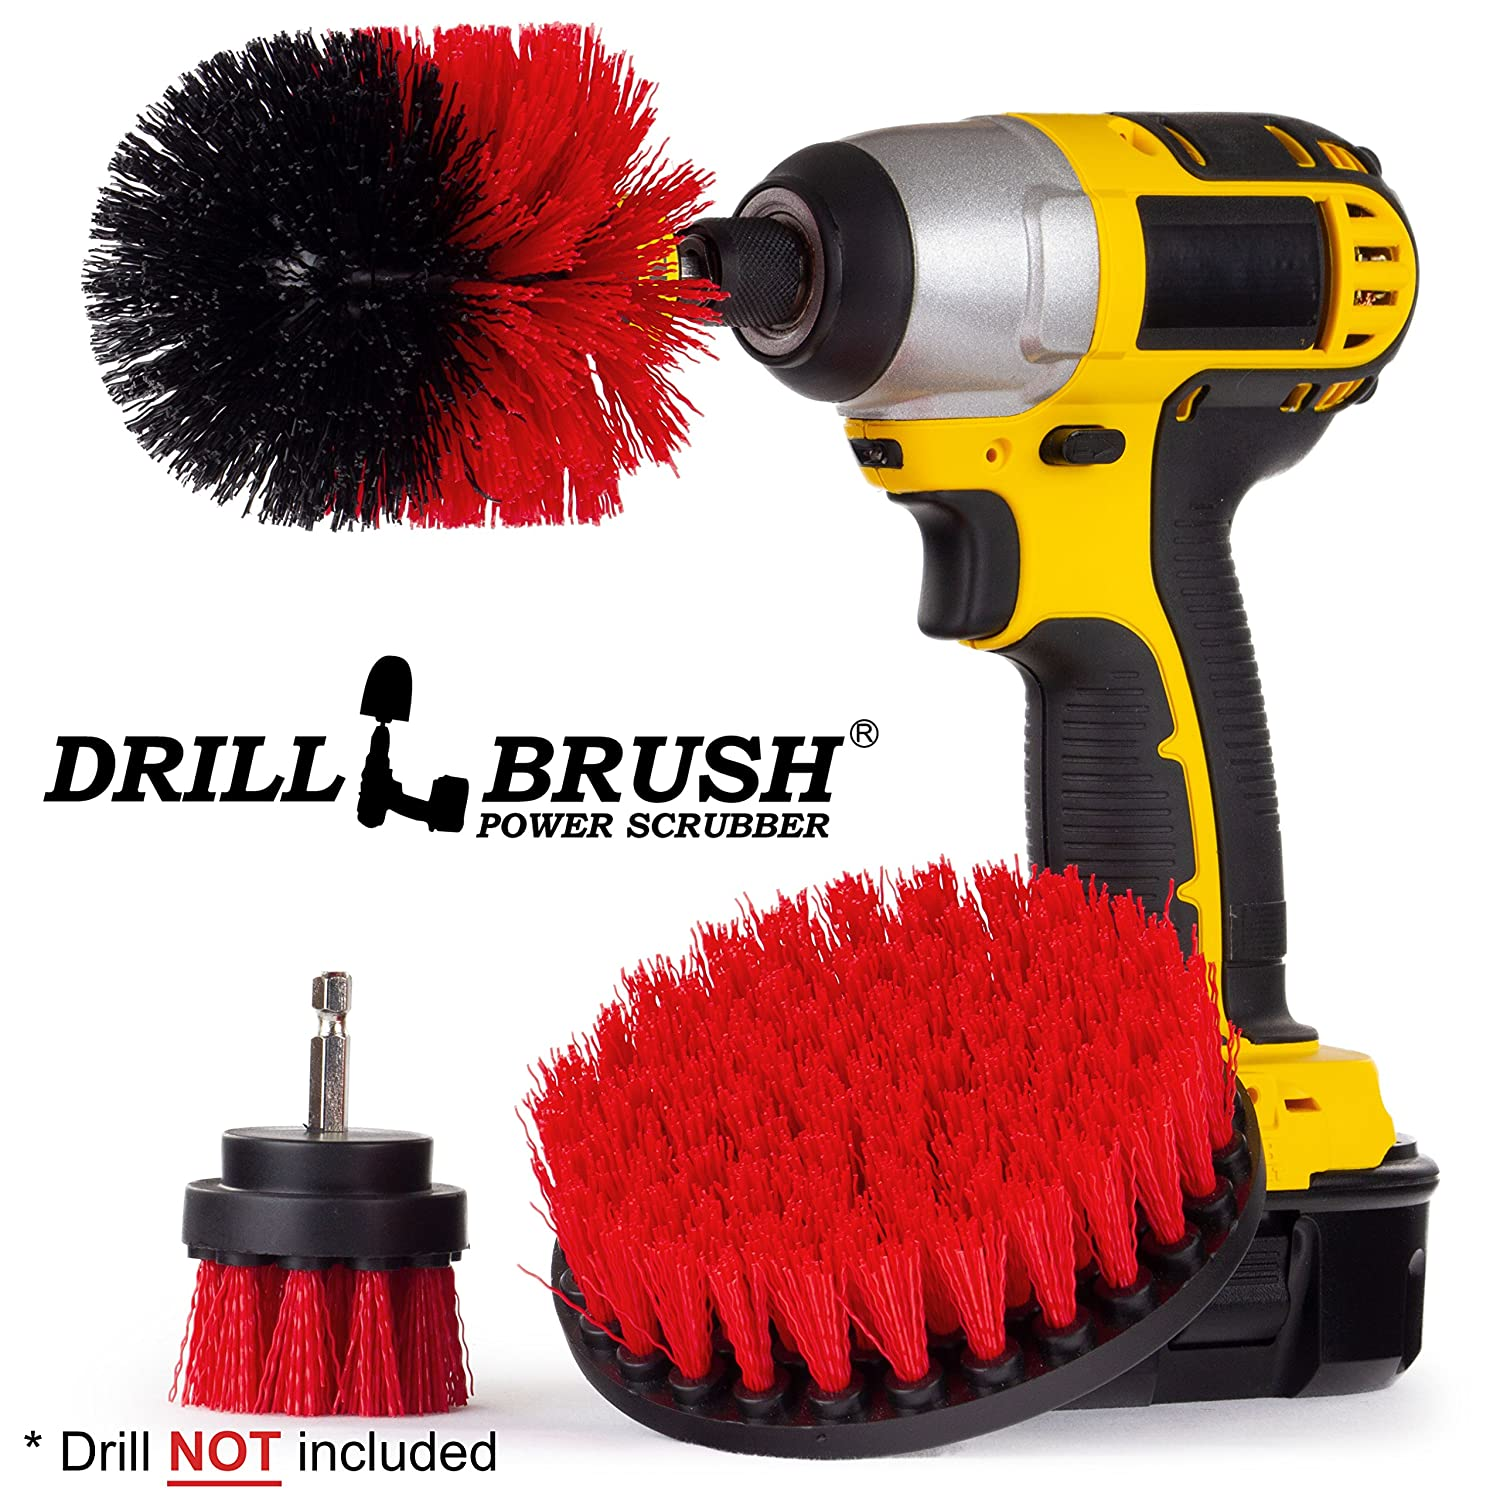 Drillbrush Electric Spin Scrubber Brush Kit for Bathroom Tub and Shower. Easy Tile Grout Cleaner Tool - Includes Three Different Size Replaceable Scrubber Brush Heads Y-S-52O-QC-DB